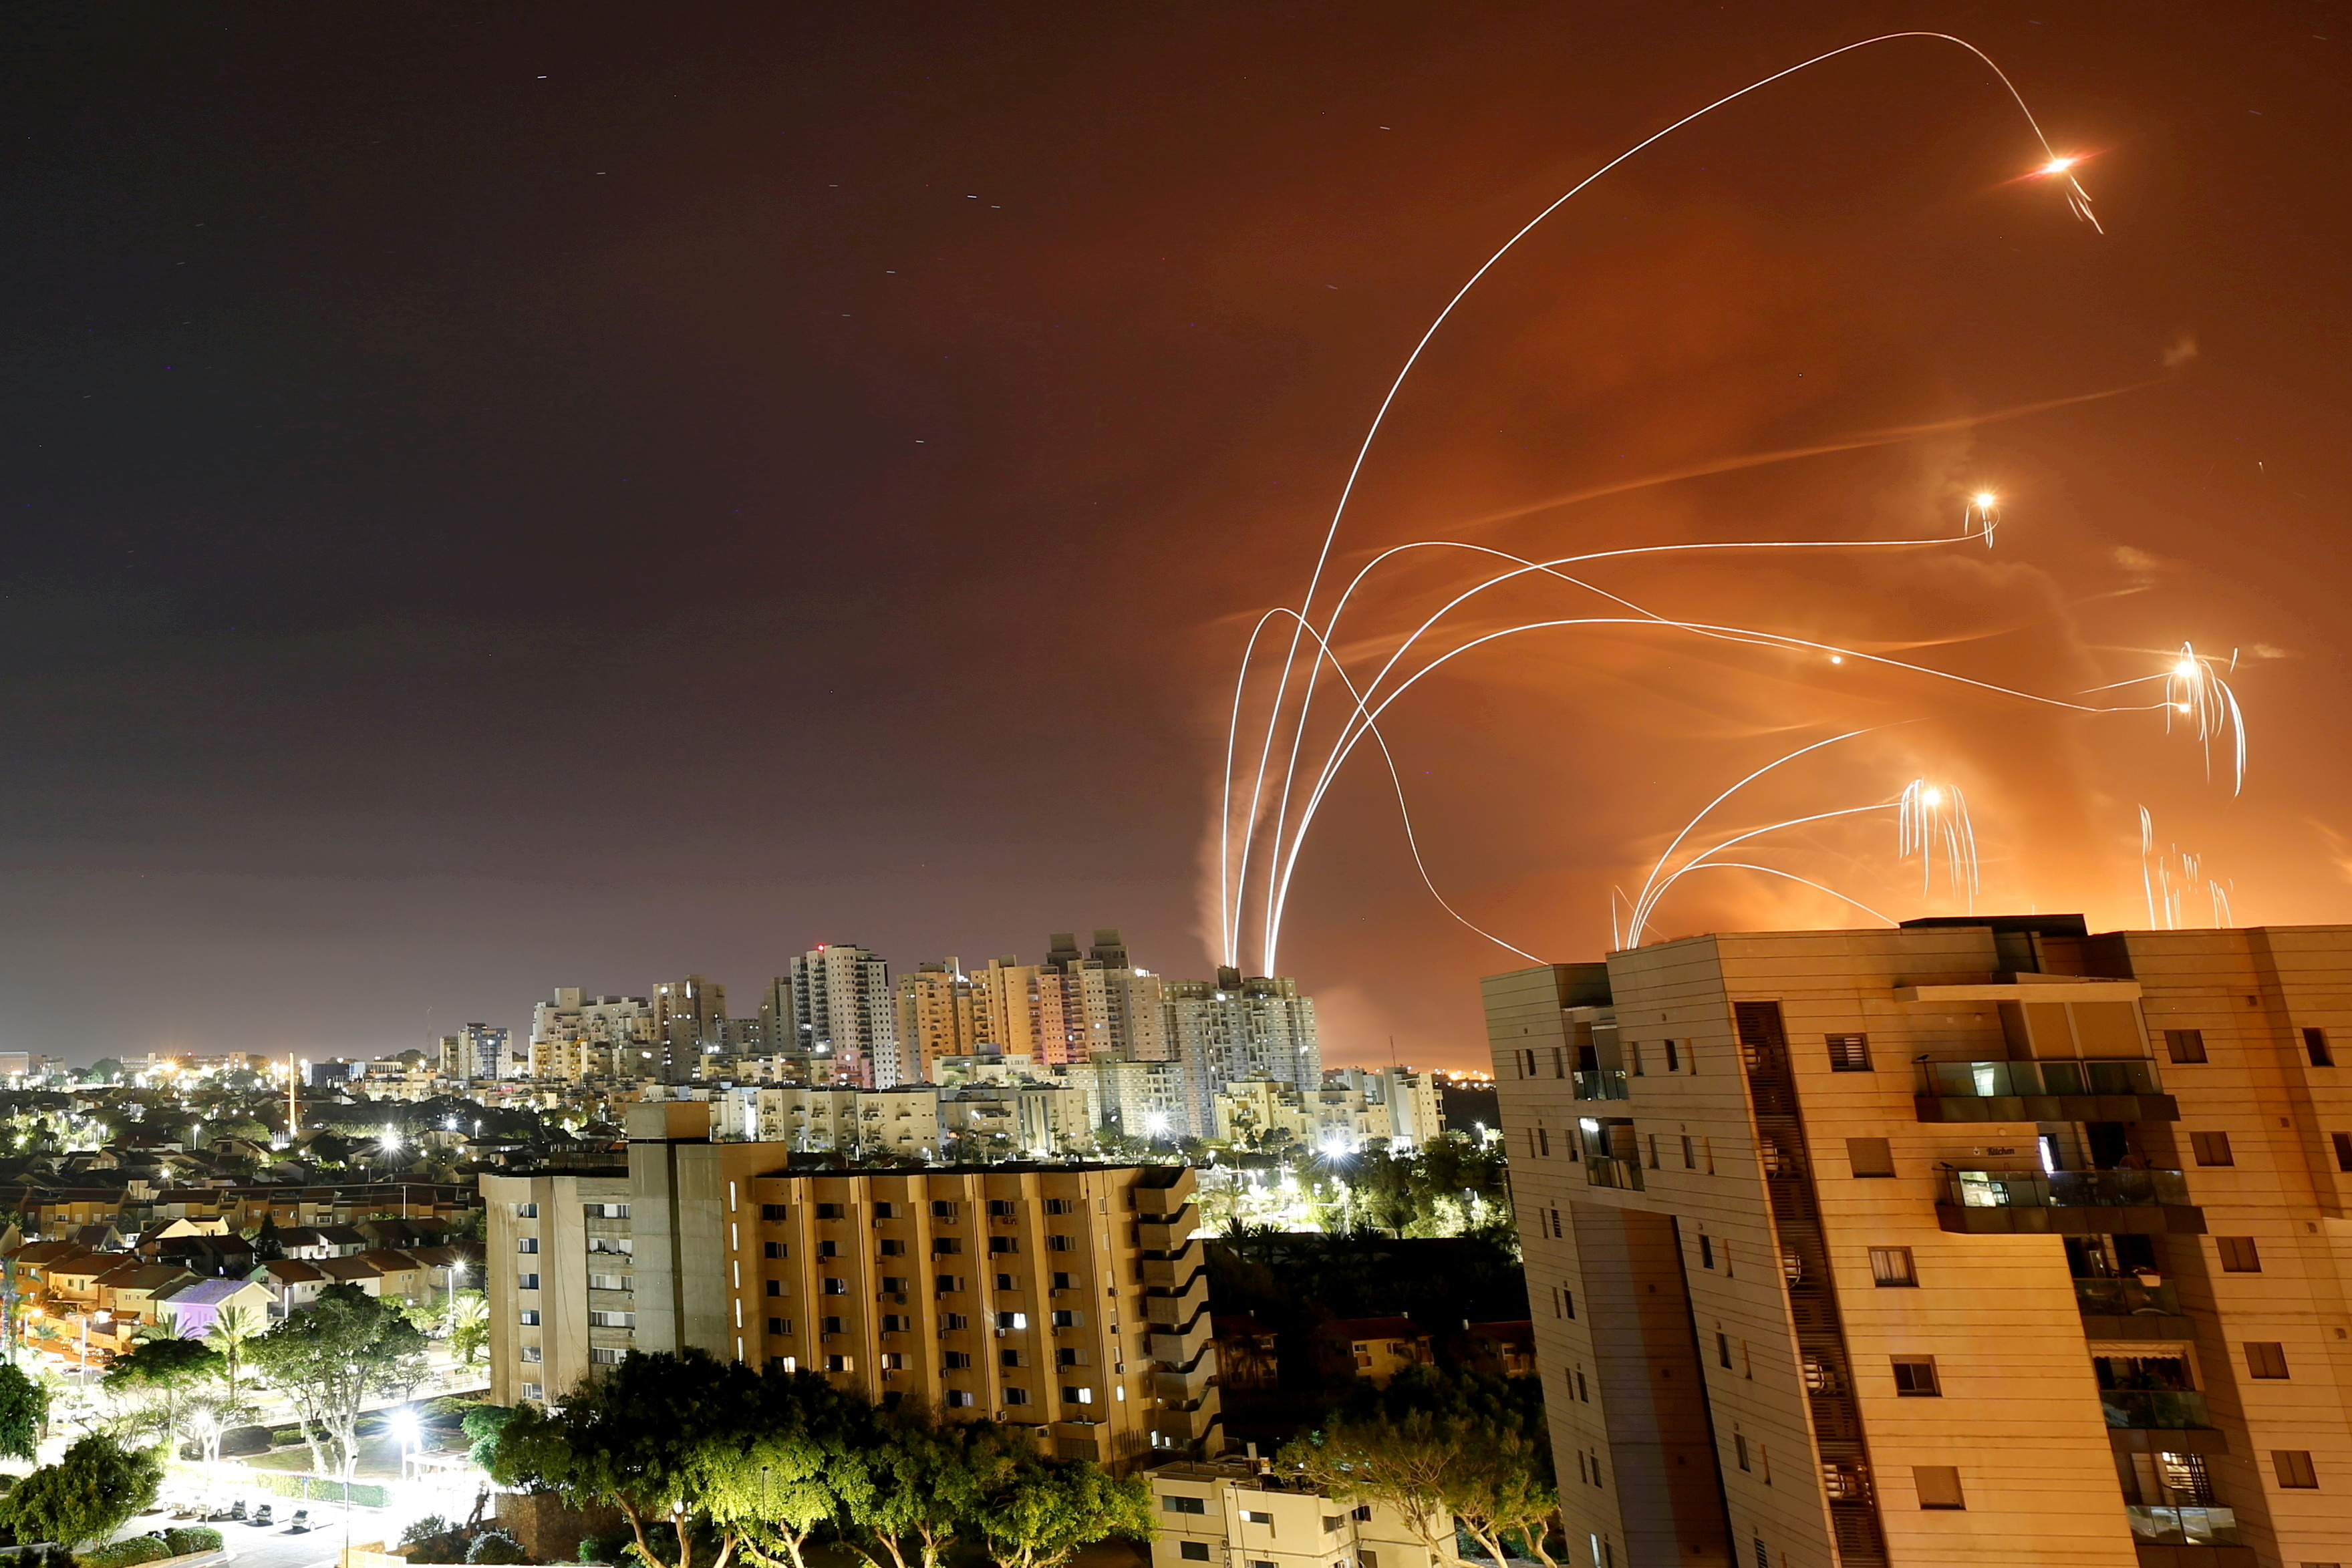 Streaks of light are seen as Israel's Iron Dome anti-missile system intercepts rockets launched from the Gaza Strip towards Israel, as seen from Ashkelon, Israel, May 12. REUTERS/Amir Cohen